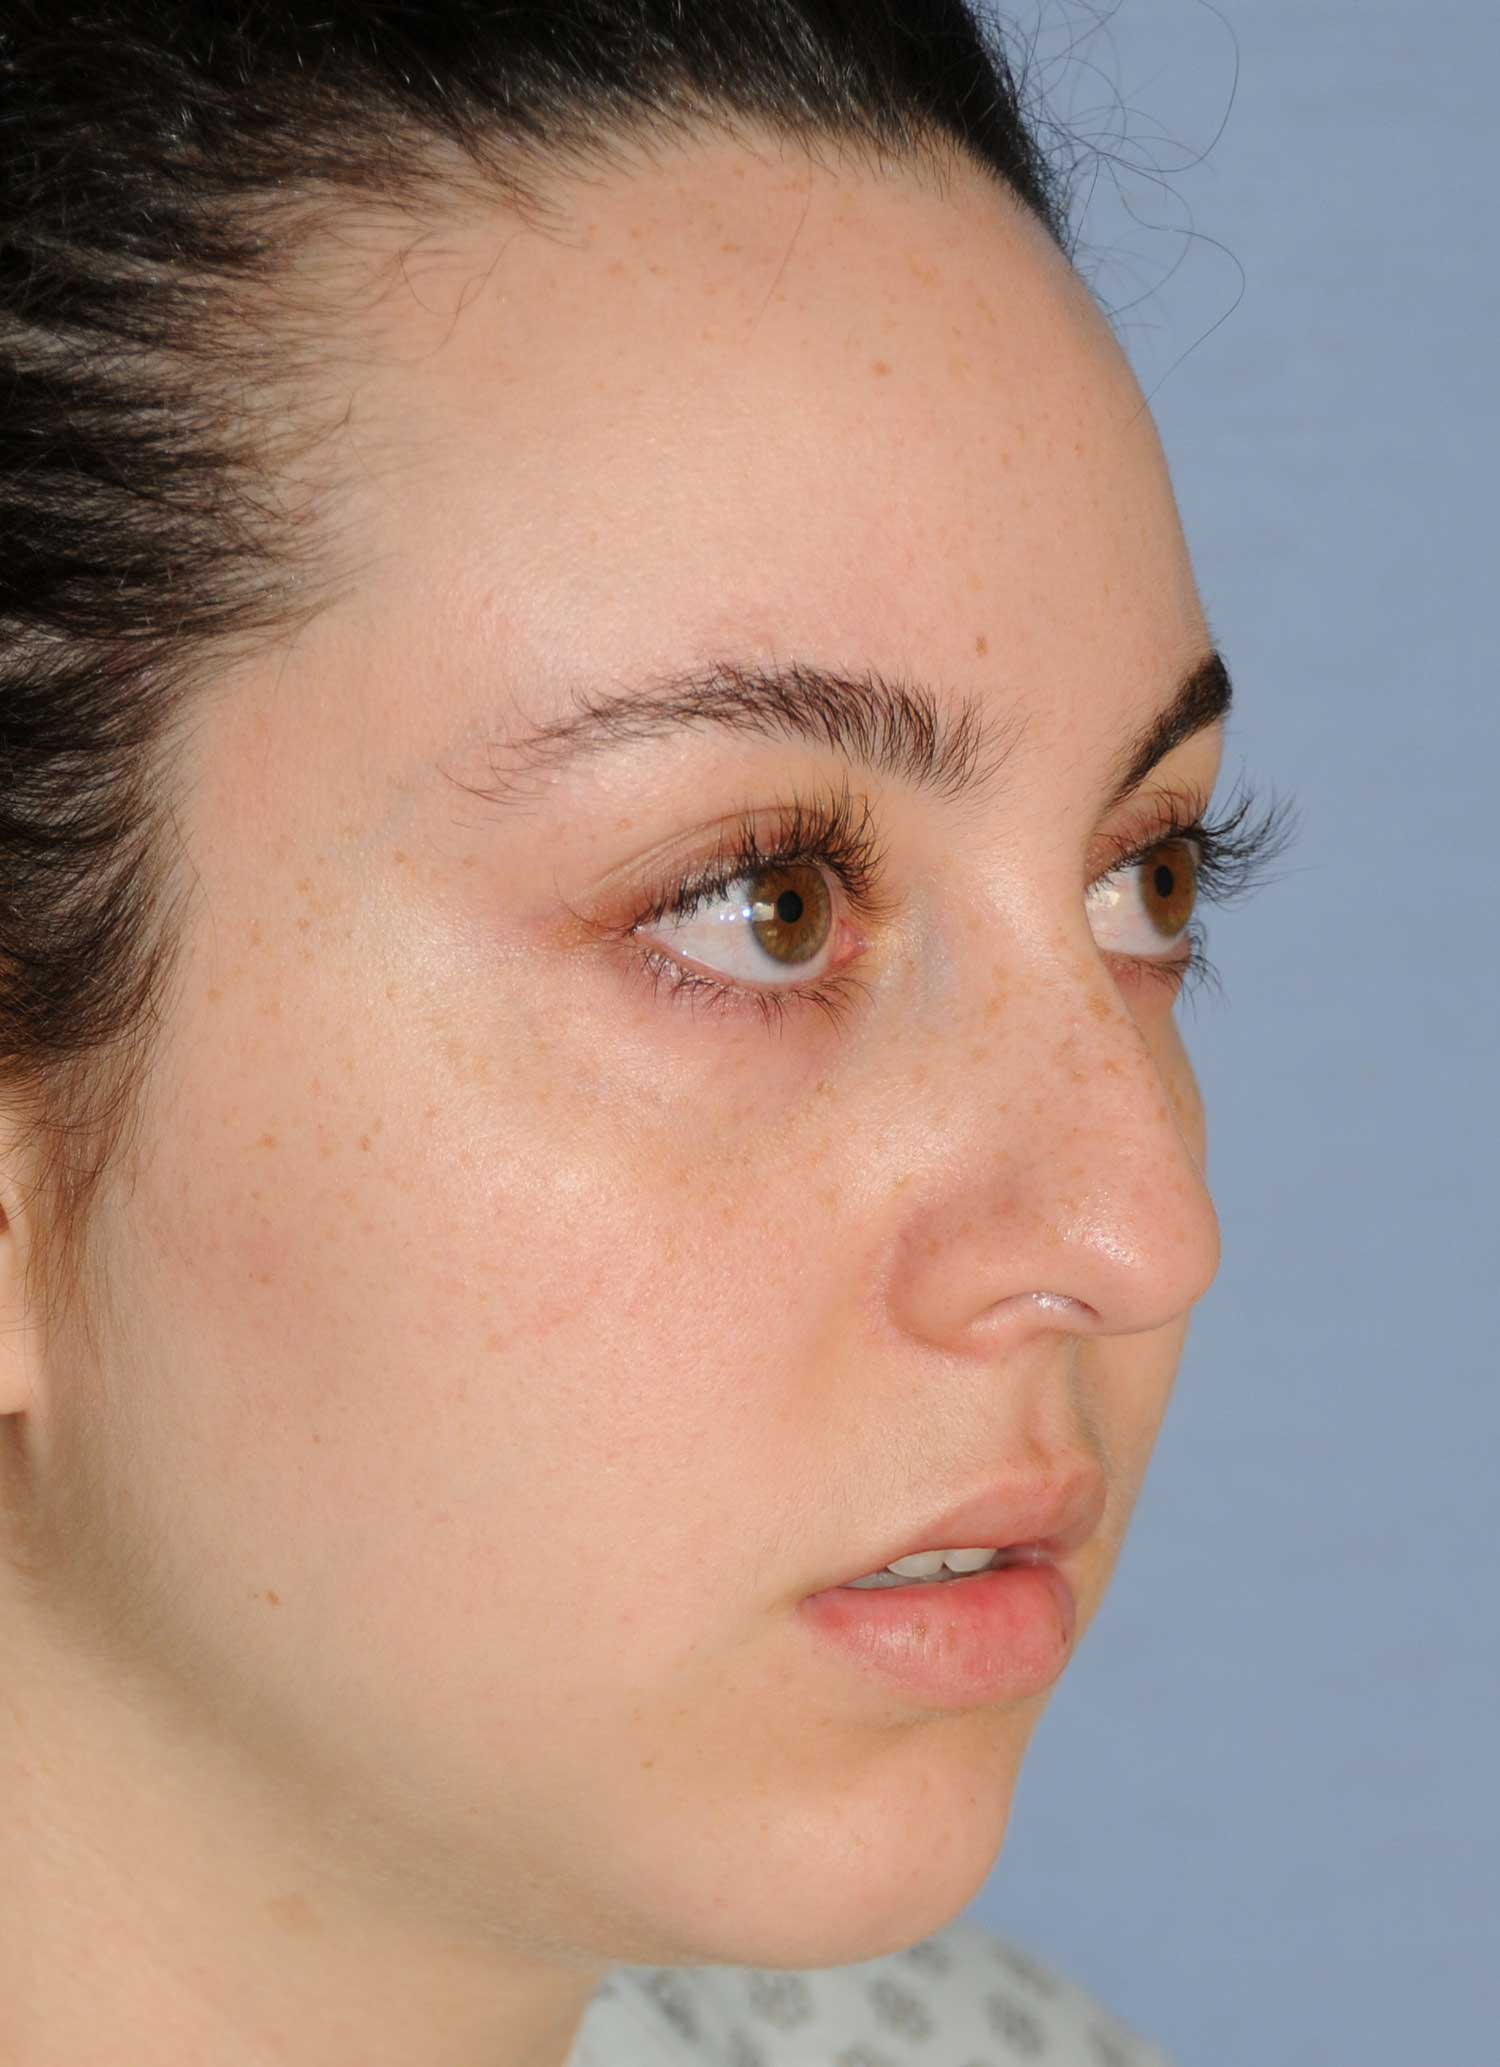 Rhinoplasty for a Bulbous Nasal Tip, Prominent Nasal Bridge, Short Nose / Columella and Lip Fat Transfer for Small Thin Lateral Upper Outer Lips Before Right Oblique Close Up View